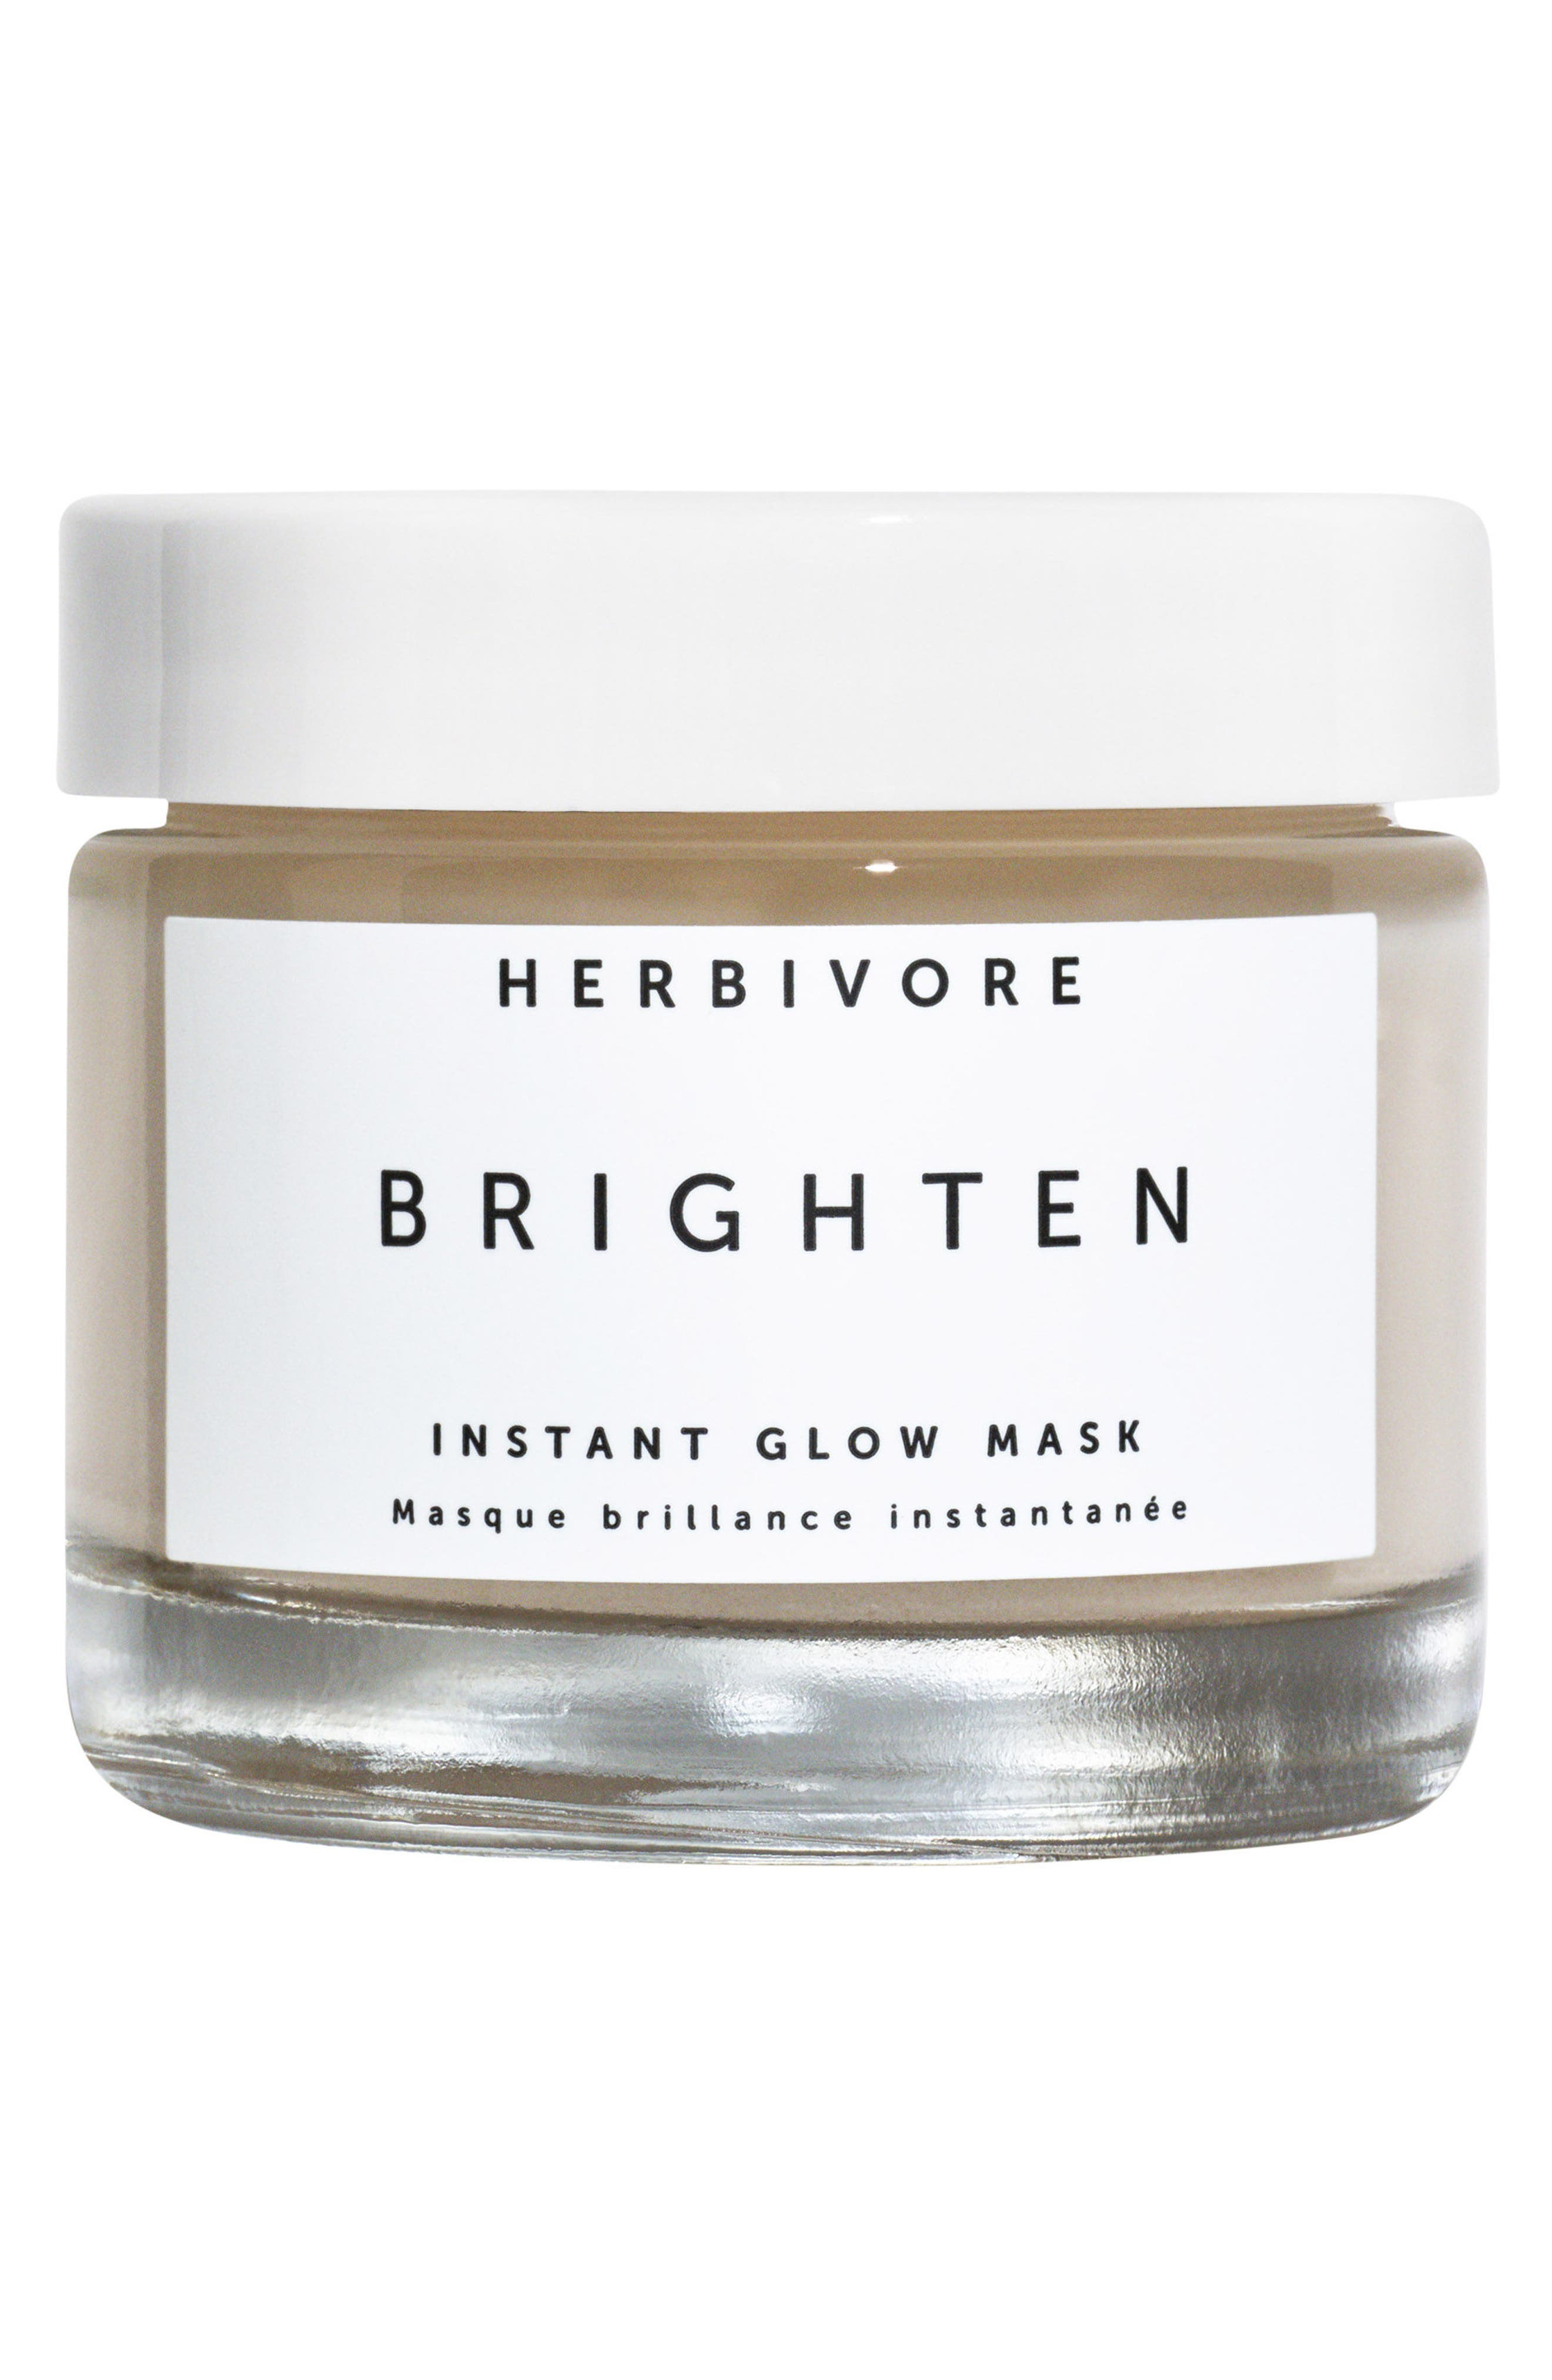 Brighten Pineapple Enzyme + Gemstone Instant Glow Mask,                         Main,                         color, NO COLOR